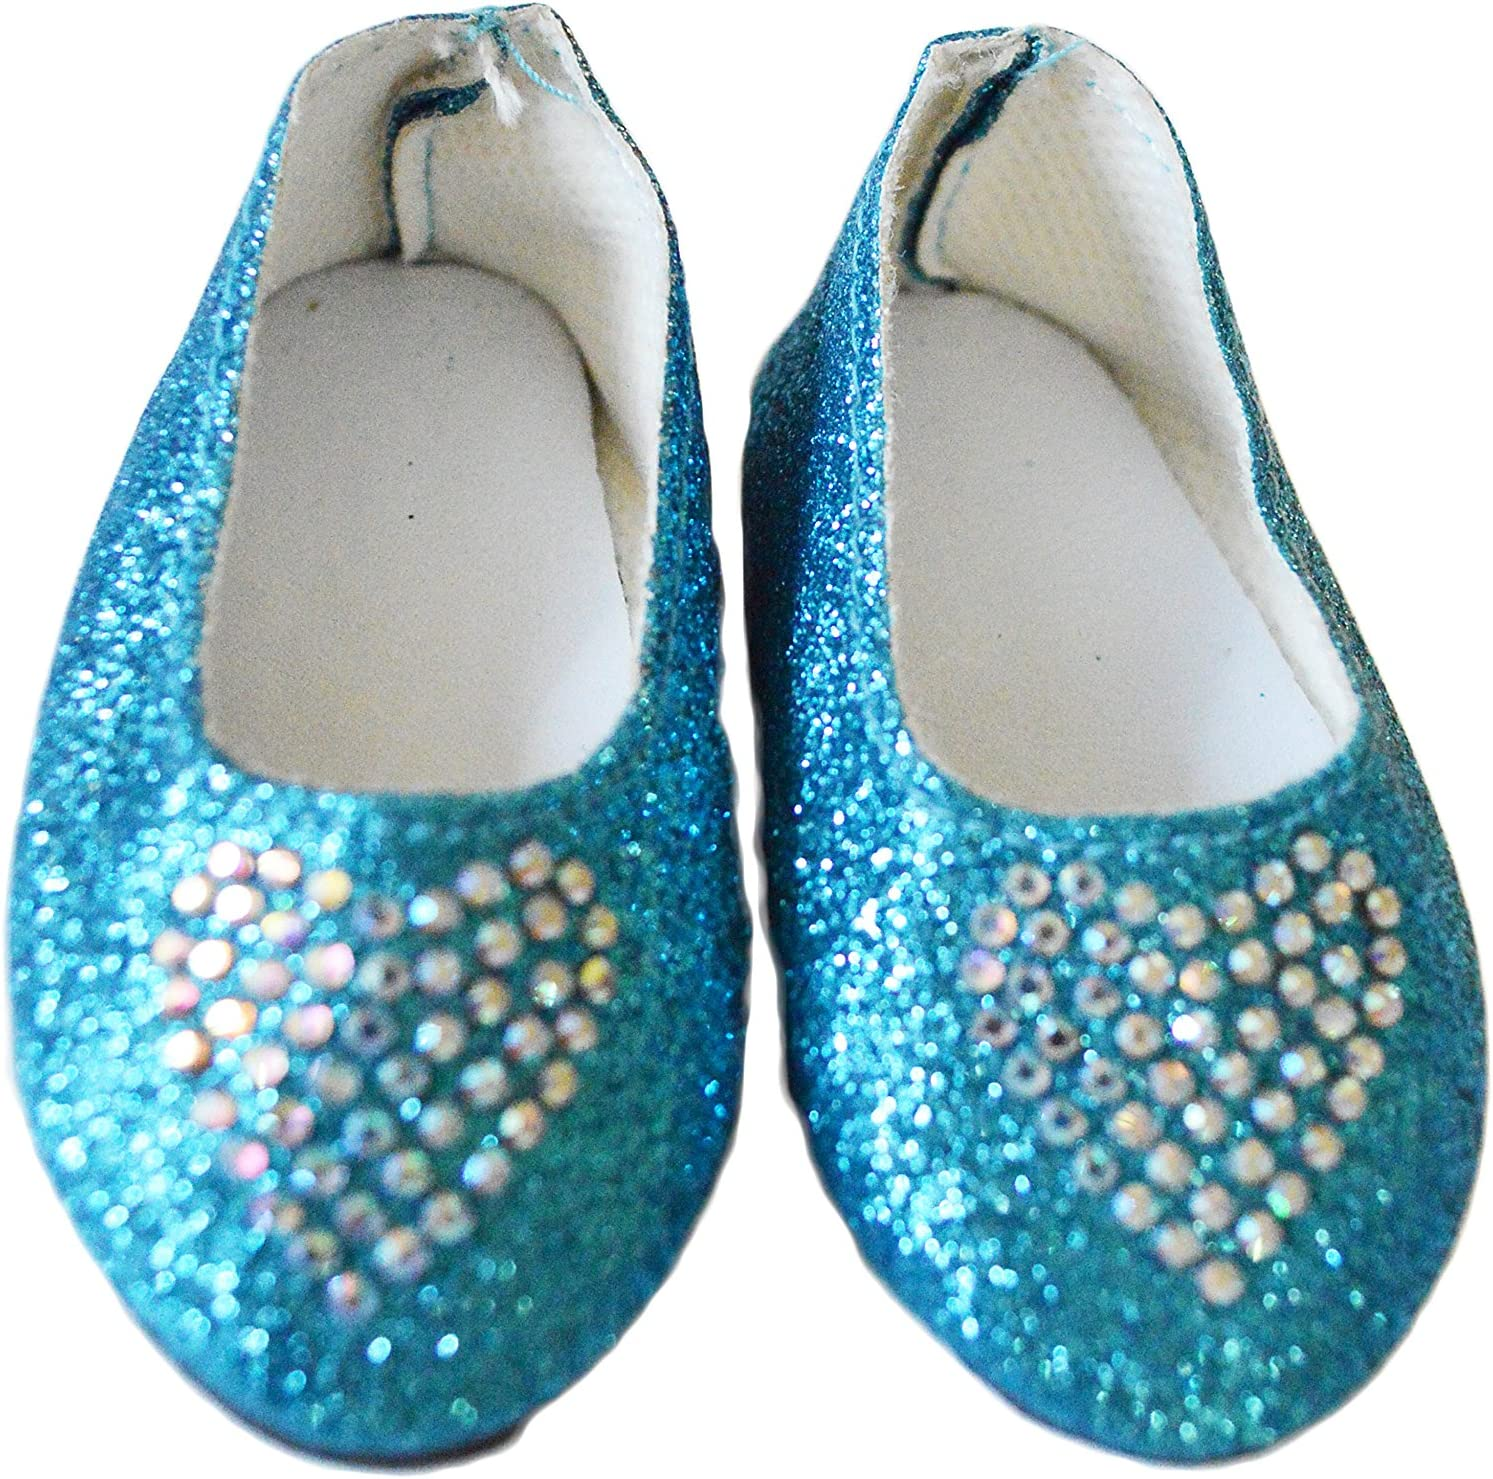 """Blue Sequin Sneakers Fits 14.5/"""" Wellie Wisher American Girl Doll Shoes"""